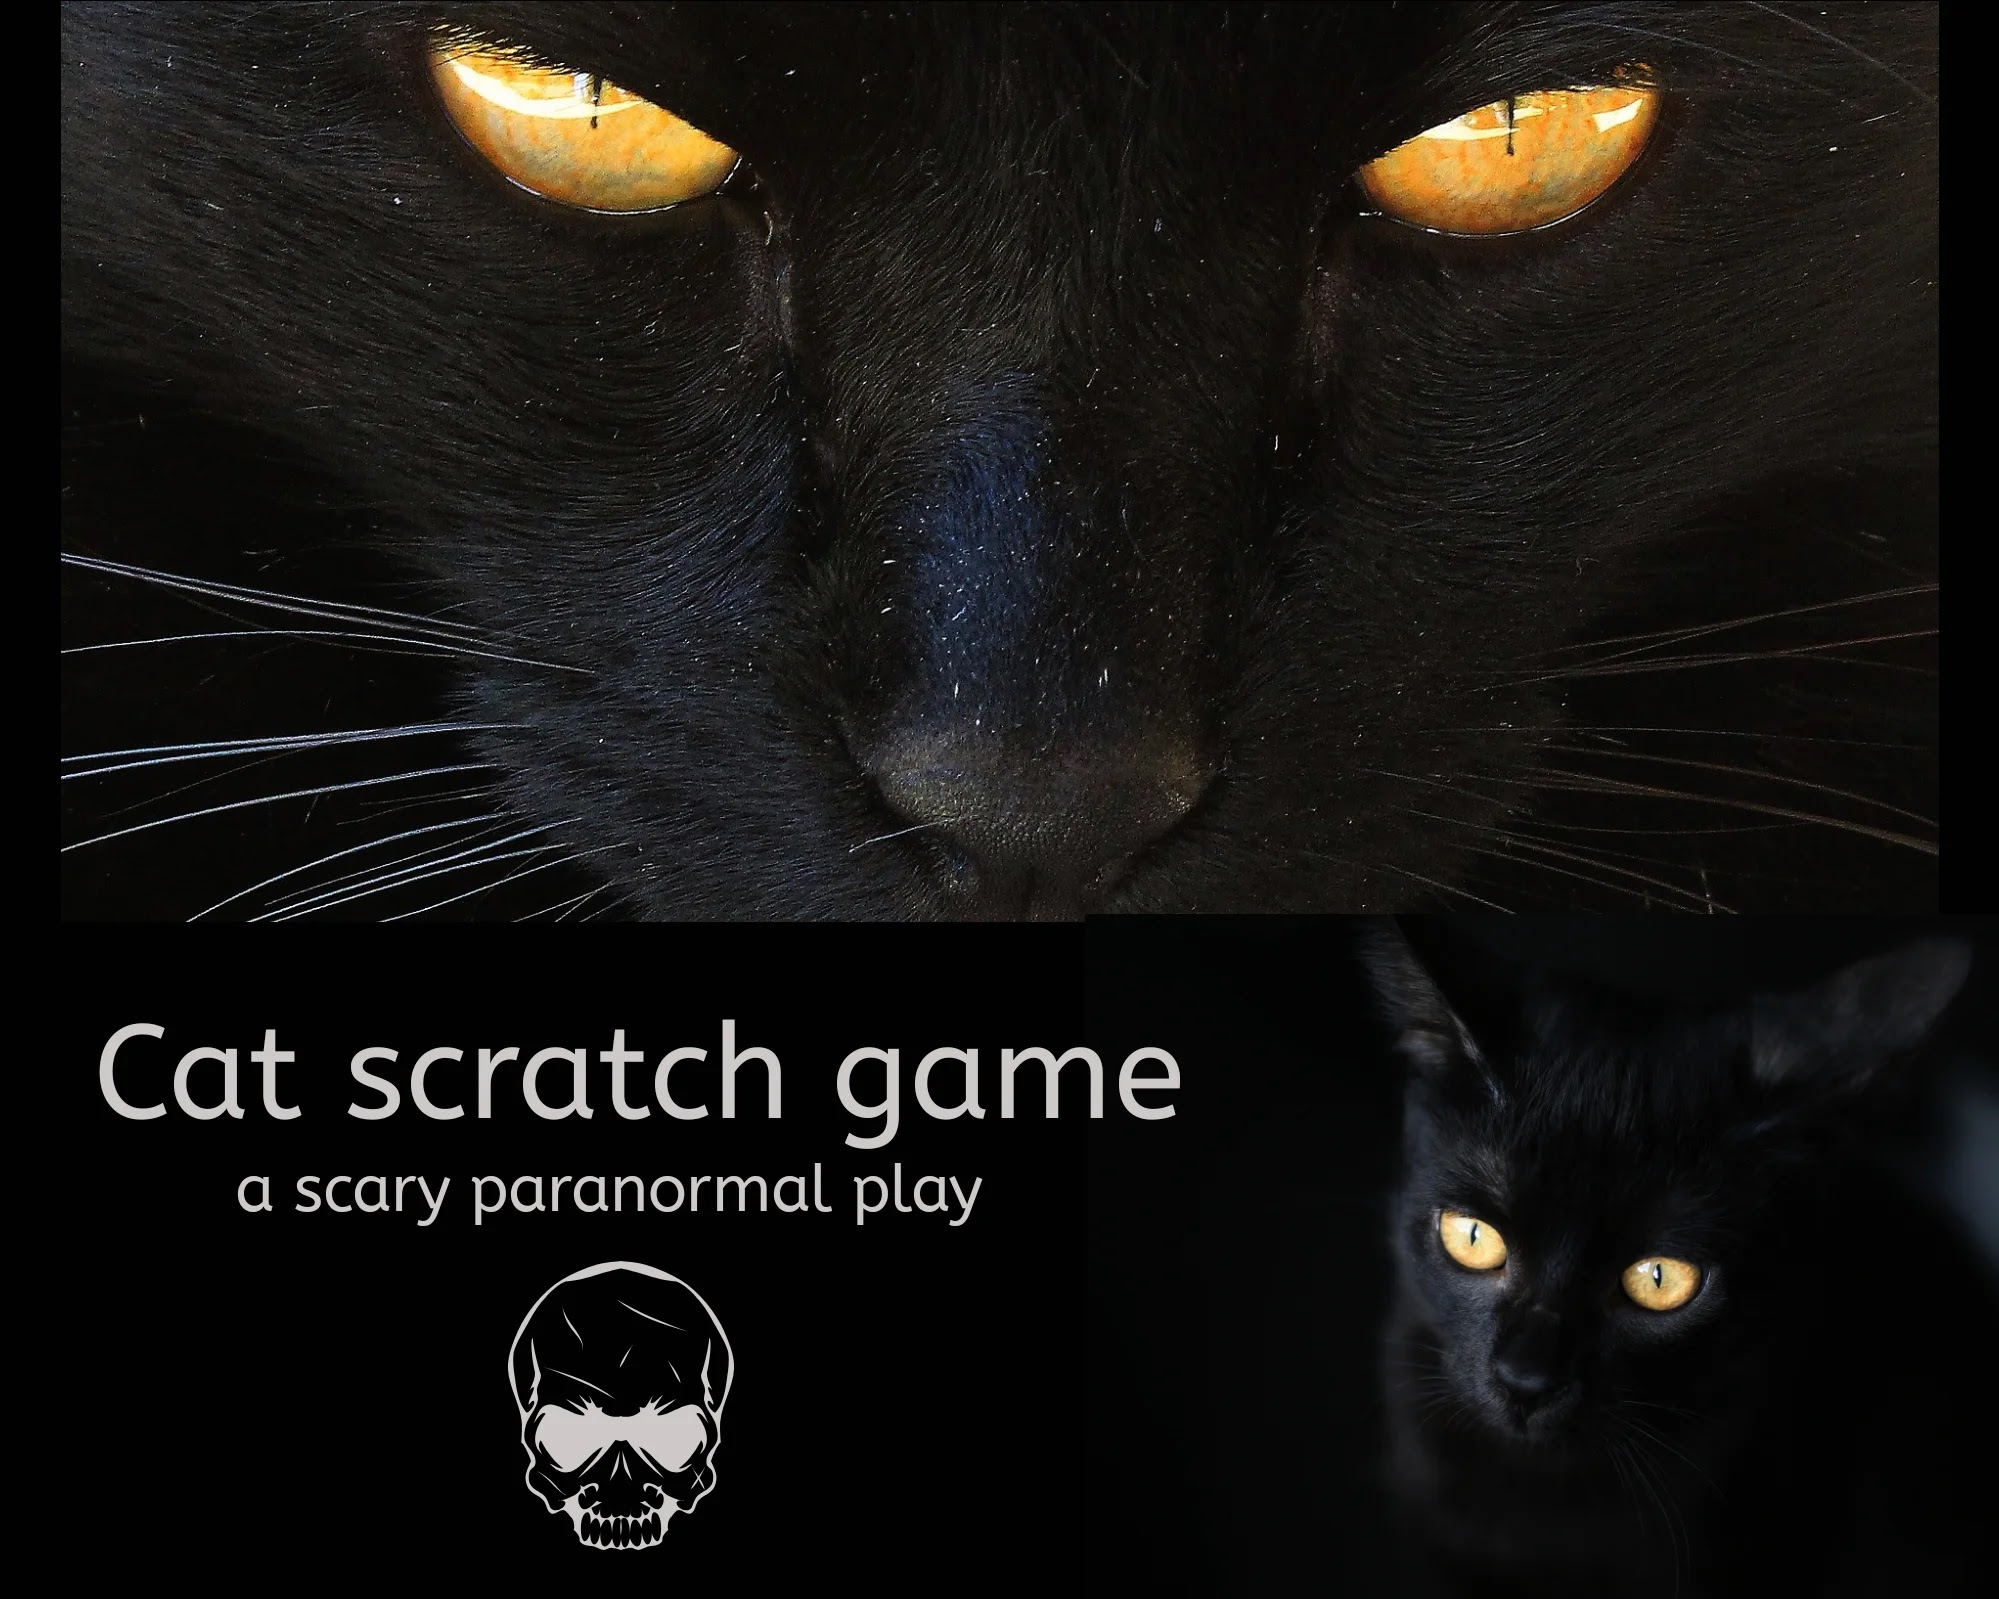 The cat scratch game